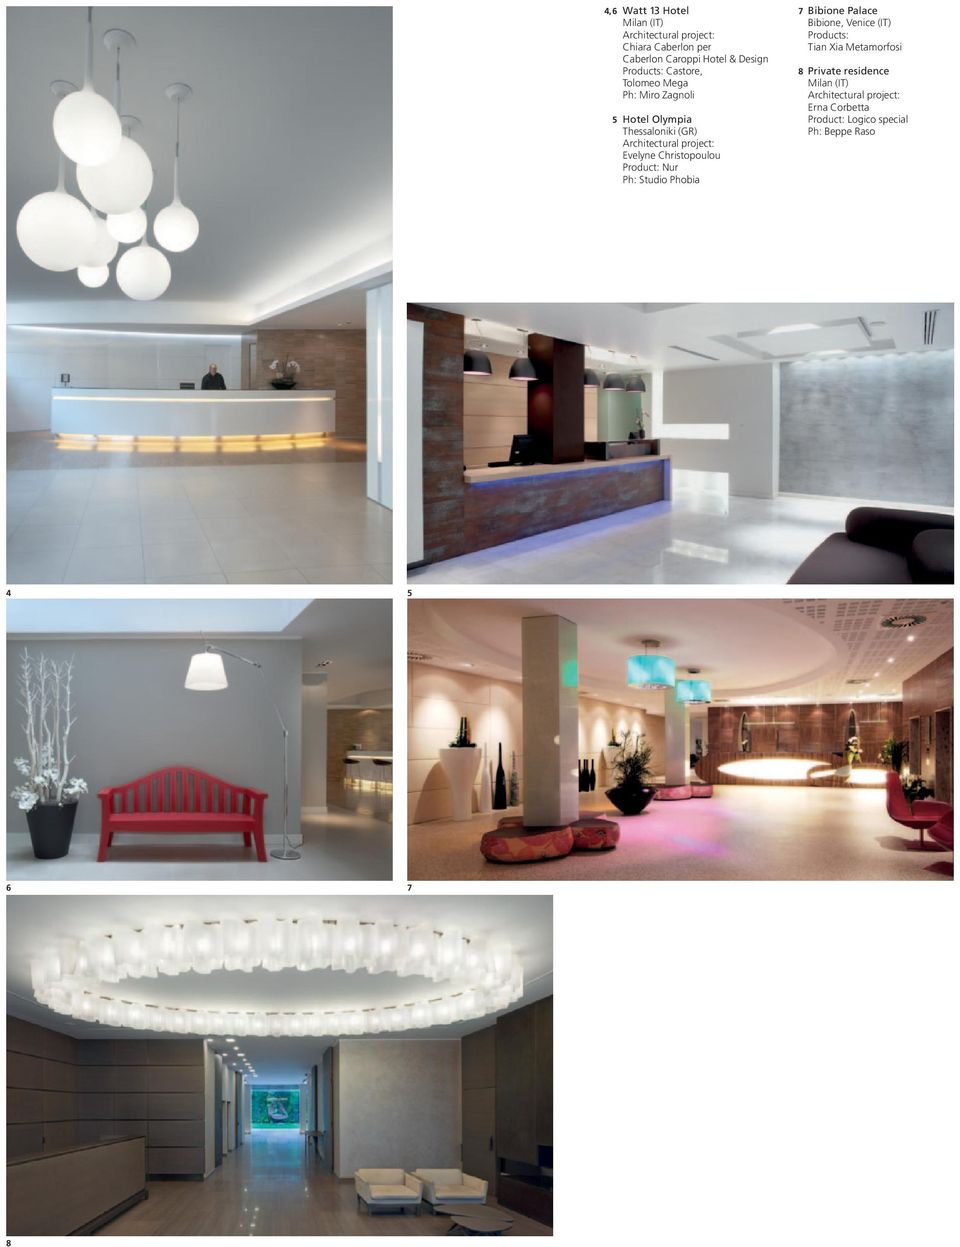 Product: Nur Ph: Studio Phobia 7 8 Bibione Palace Bibione, Venice (IT) Products: Tian Xia